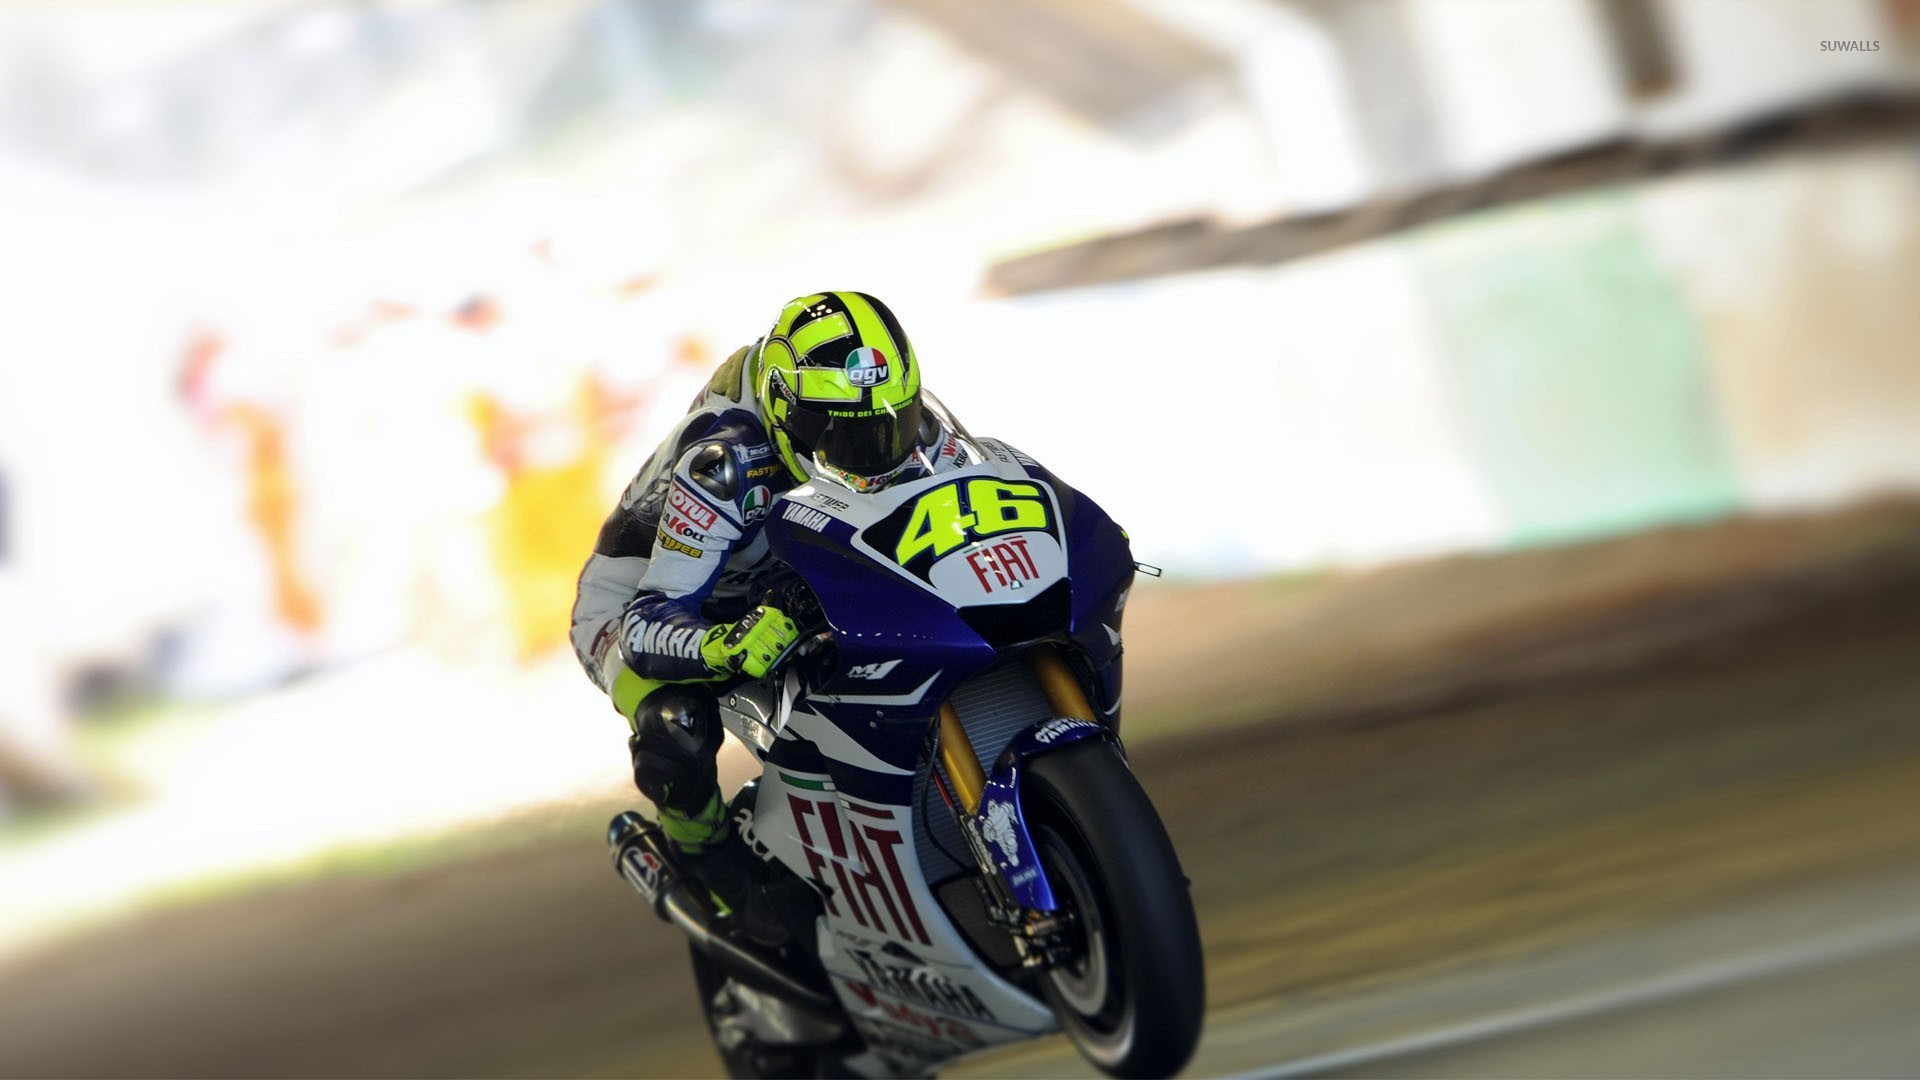 valentino rossi [8] wallpaper - motorcycle wallpapers - #29652